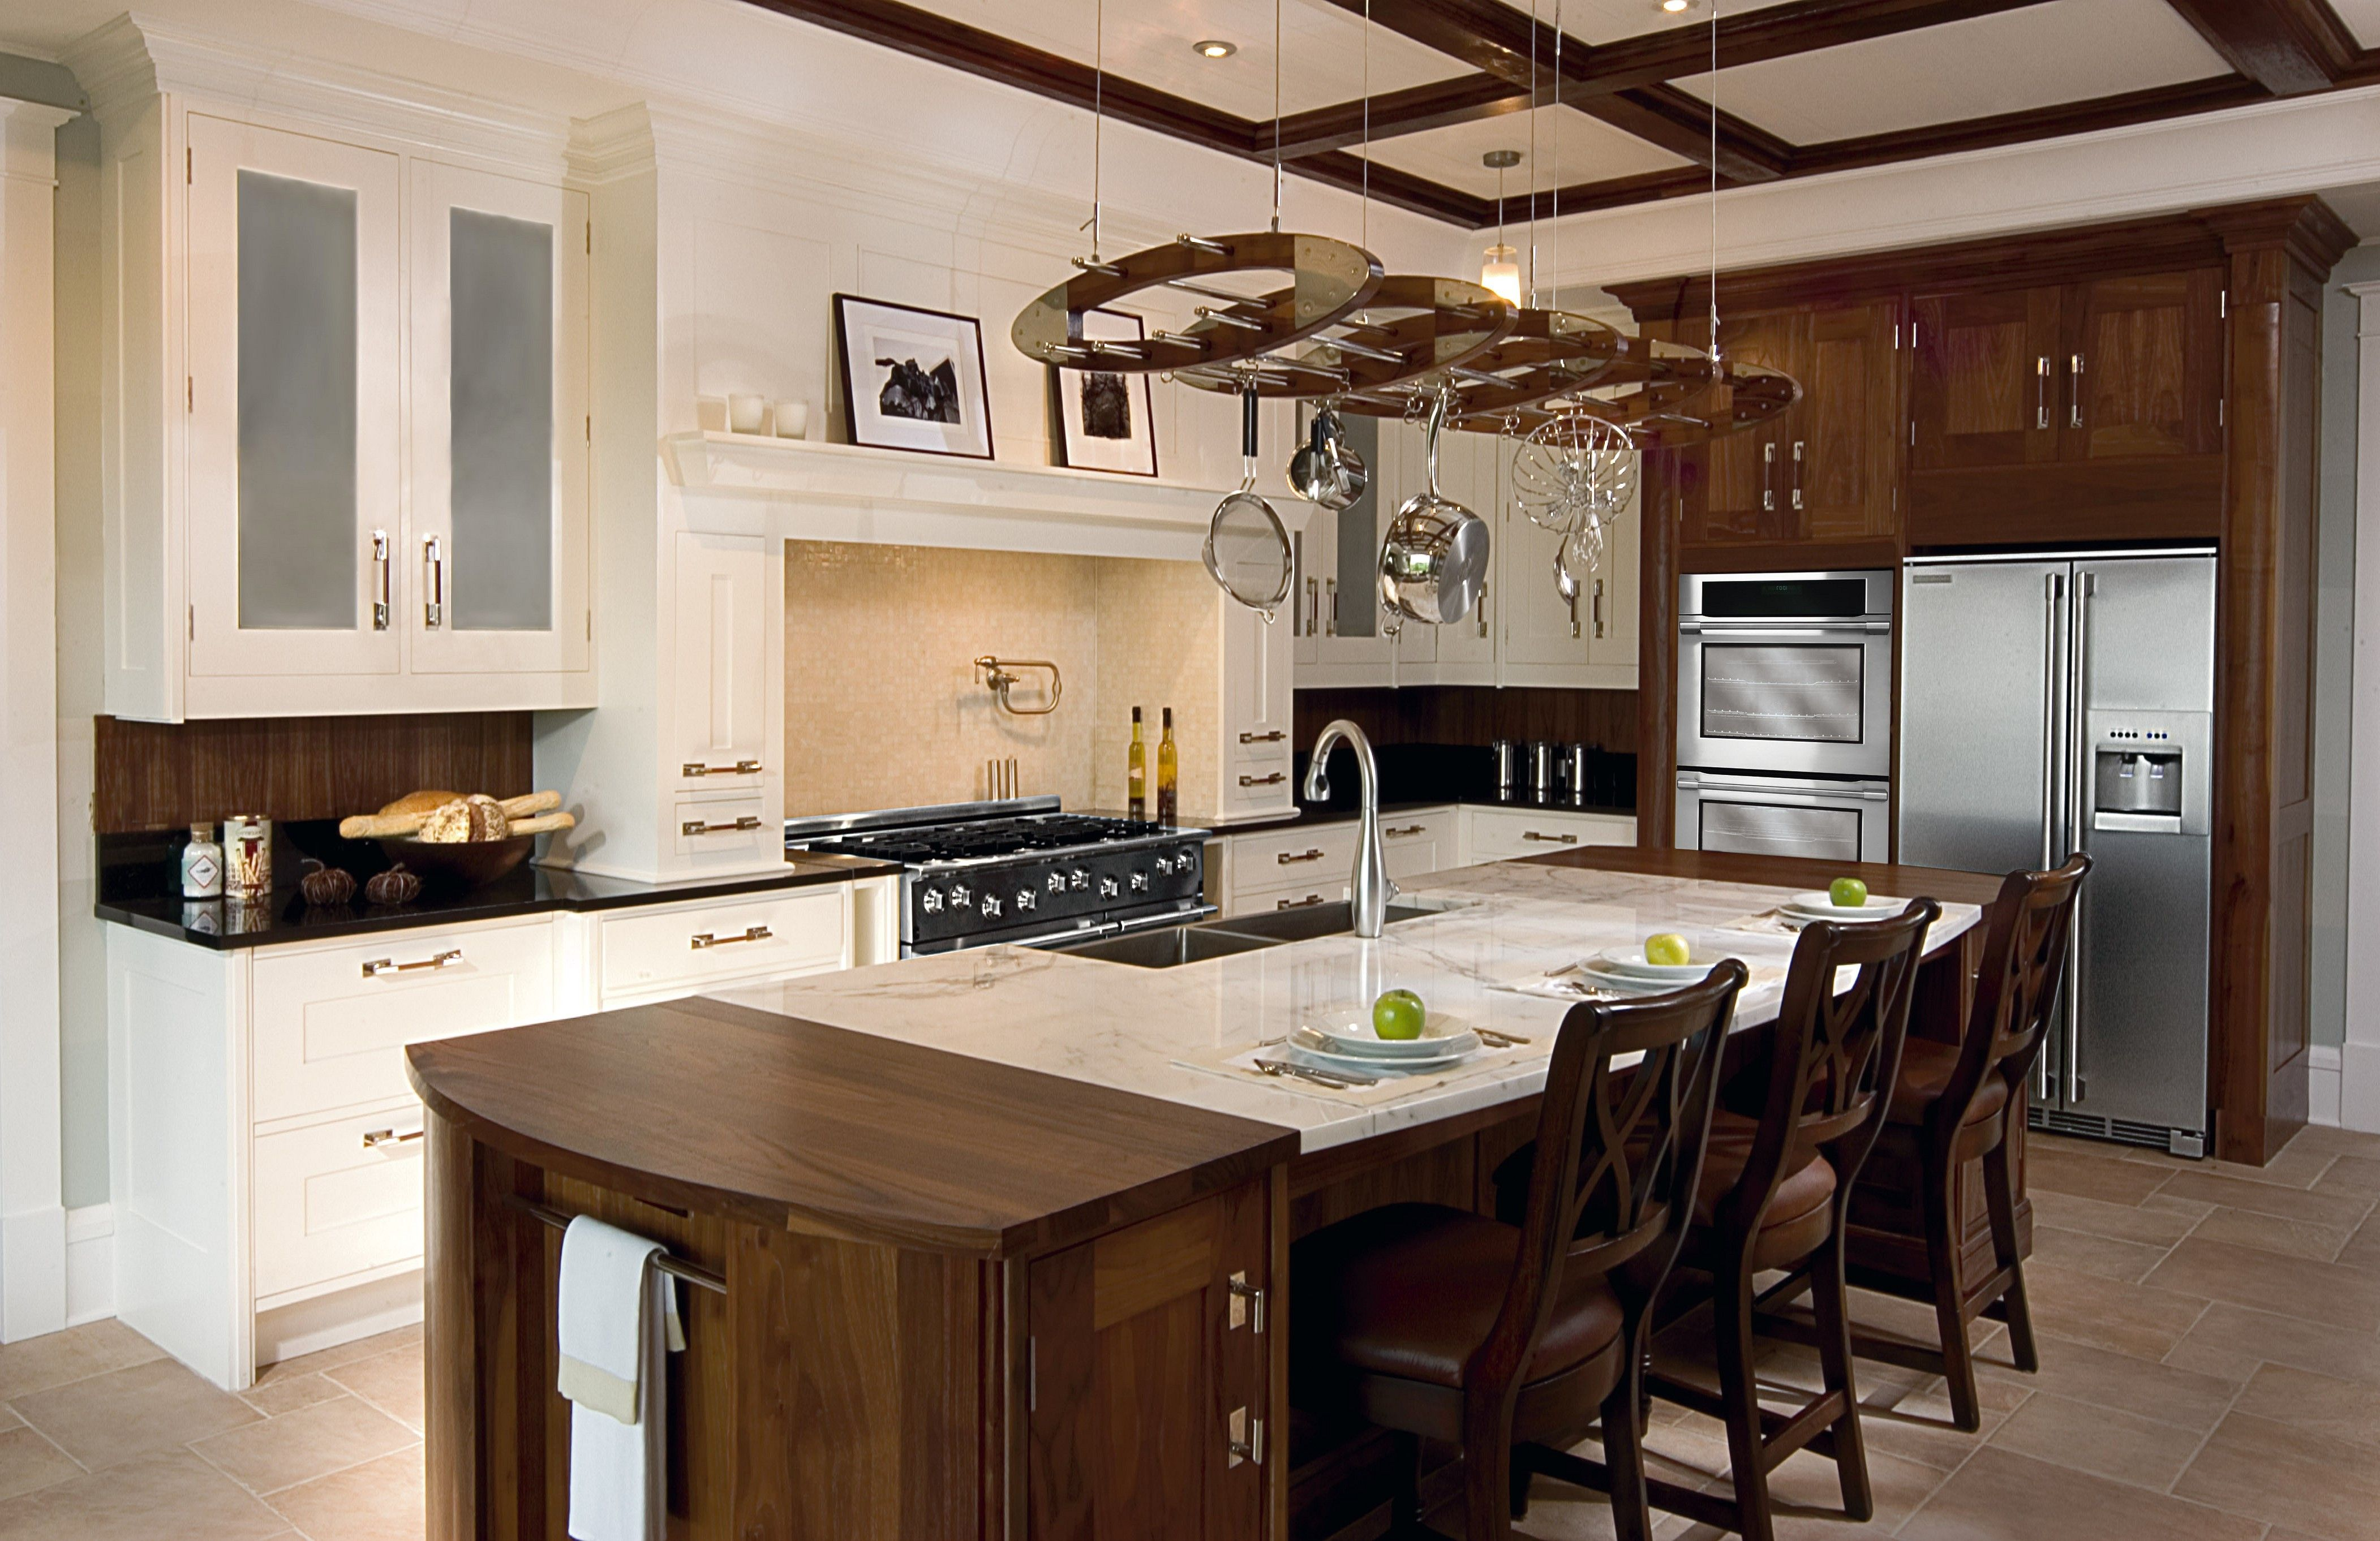 Image Result For Using Granite And Butcher Block For Island Top Black Kitchen Decor Blue Kitchen Decor Portable Kitchen Island